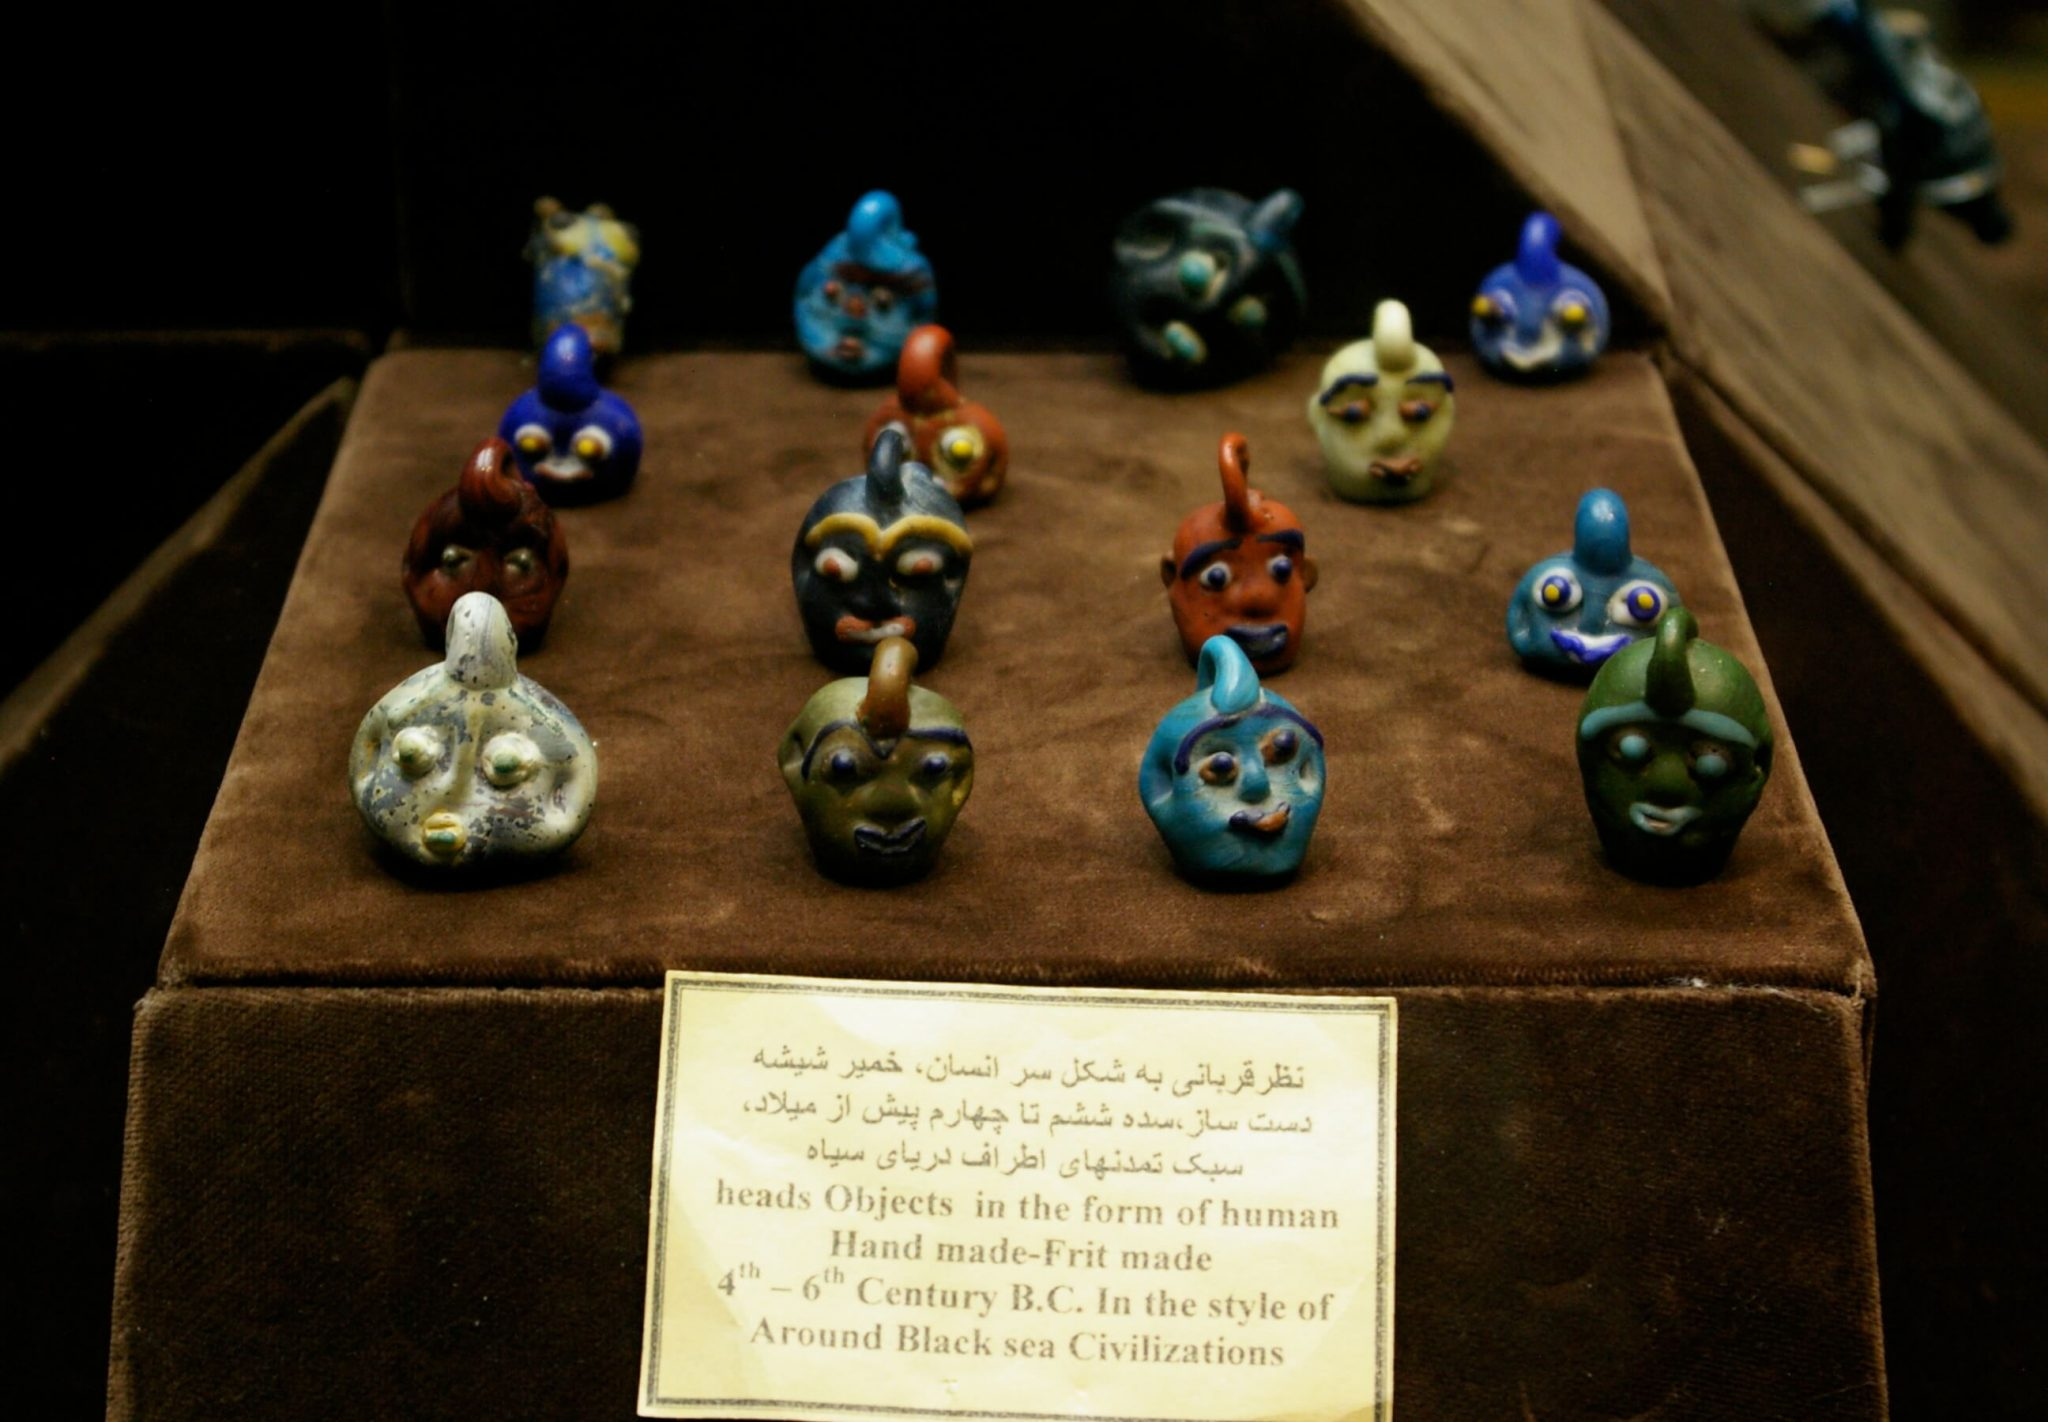 Glassware and Ceramic Museum of Tehran